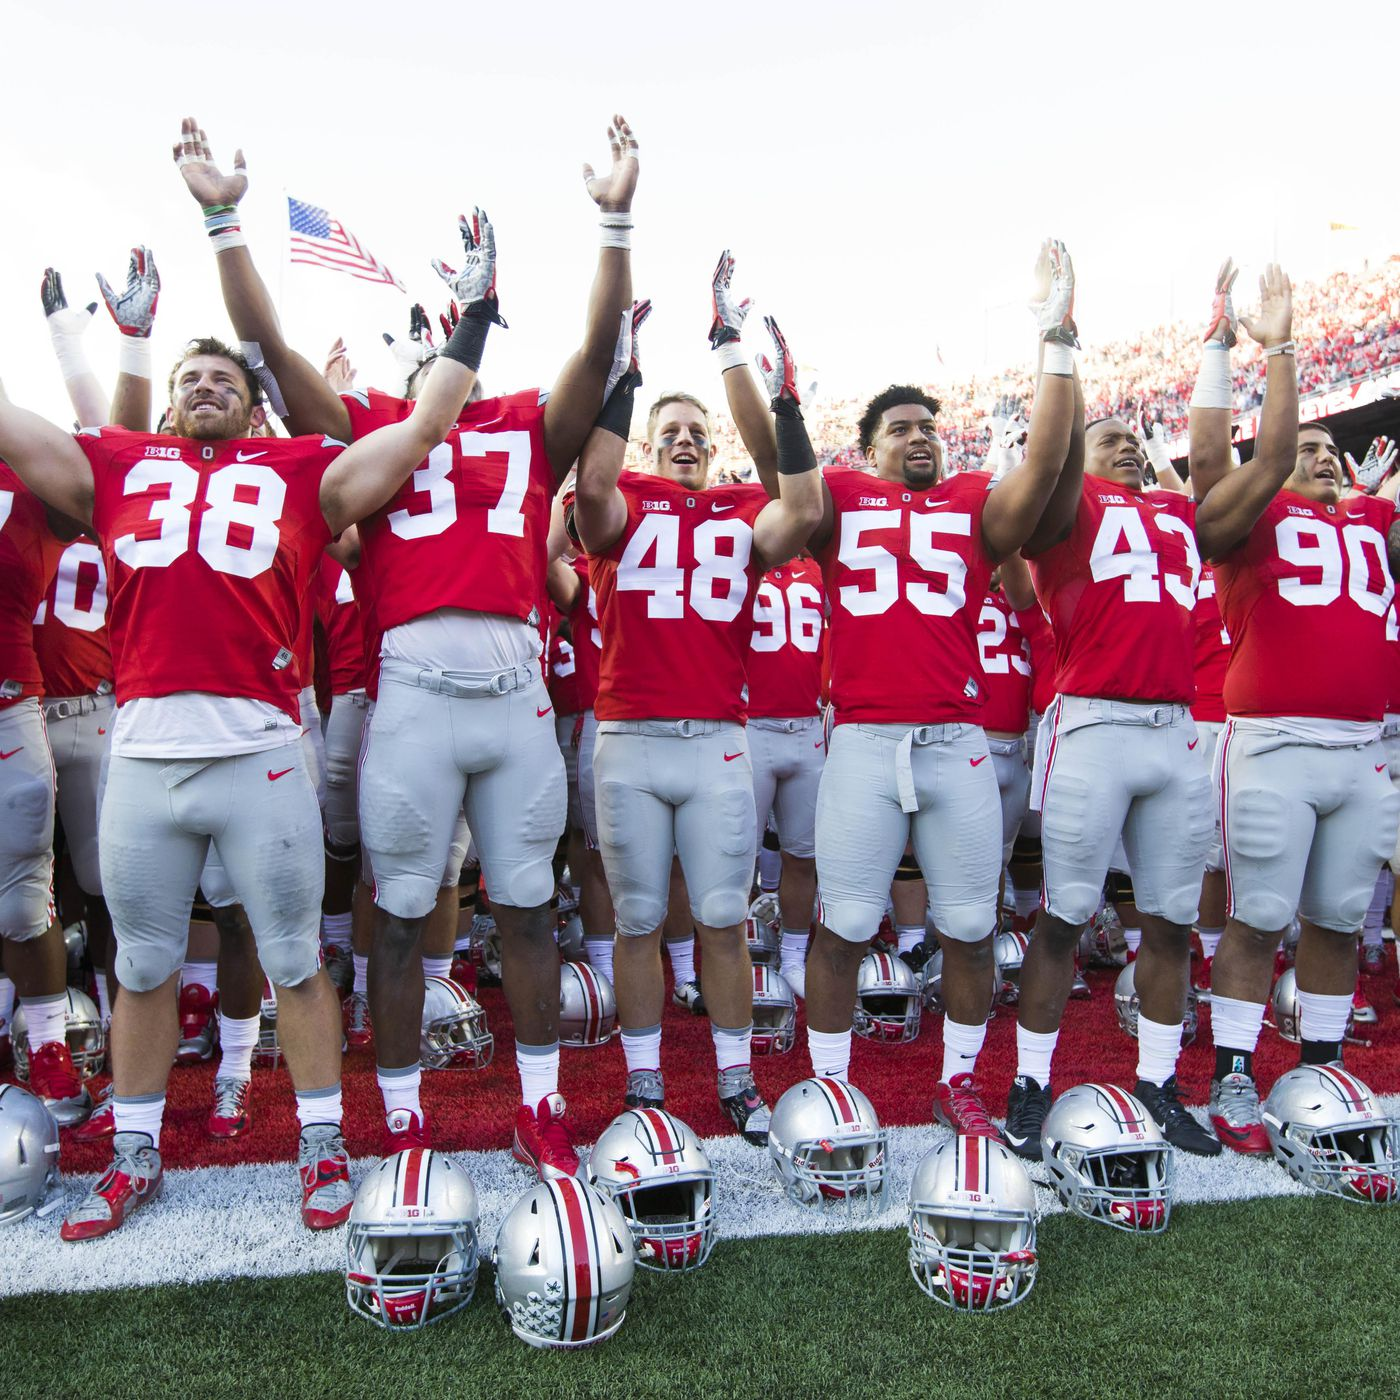 How to watch Ohio State-Northern Illinois: Game time, TV